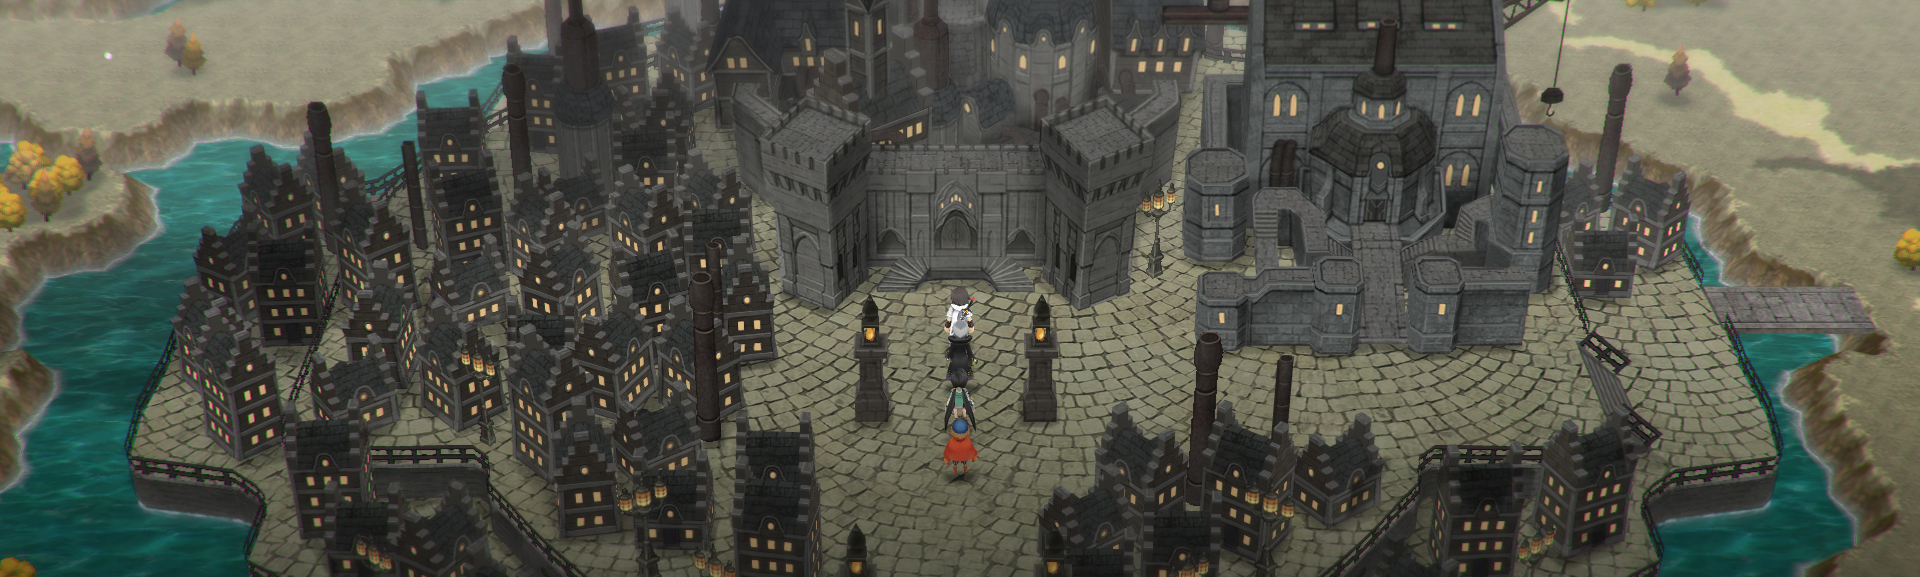 Buy LOST SPHEAR